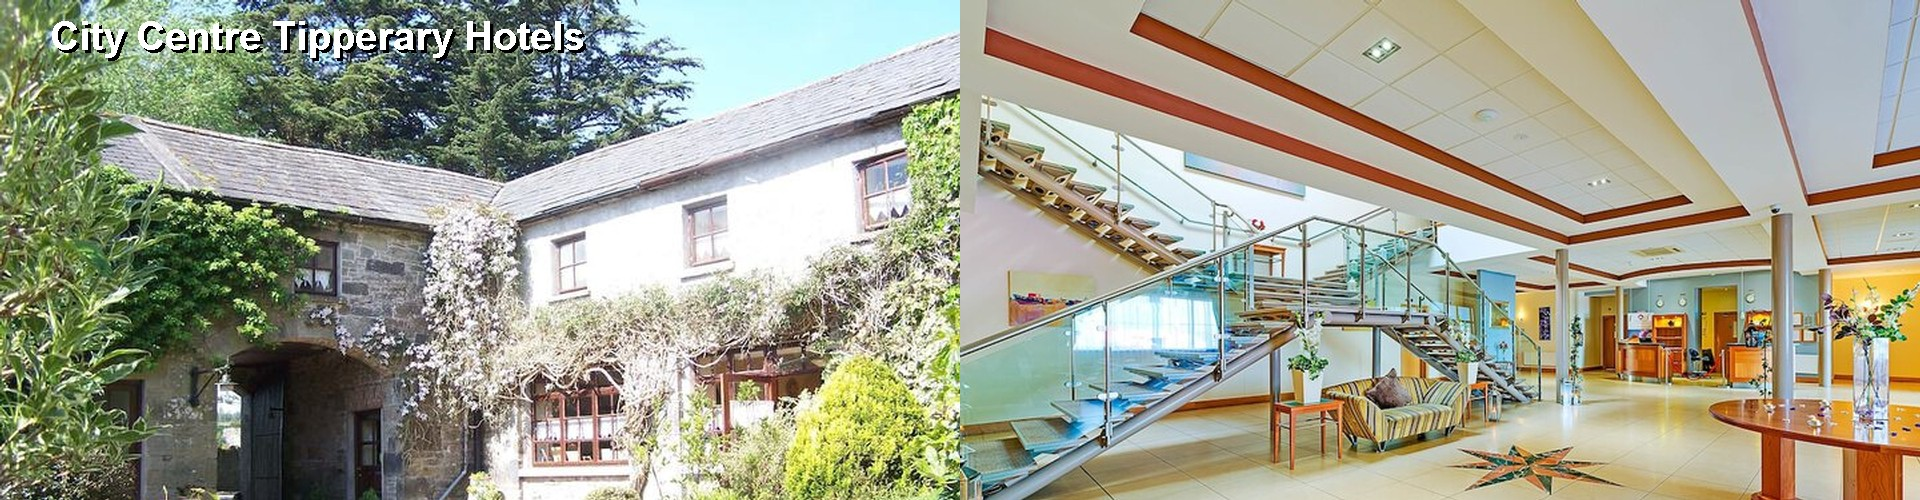 5 Best Hotels near City Centre Tipperary